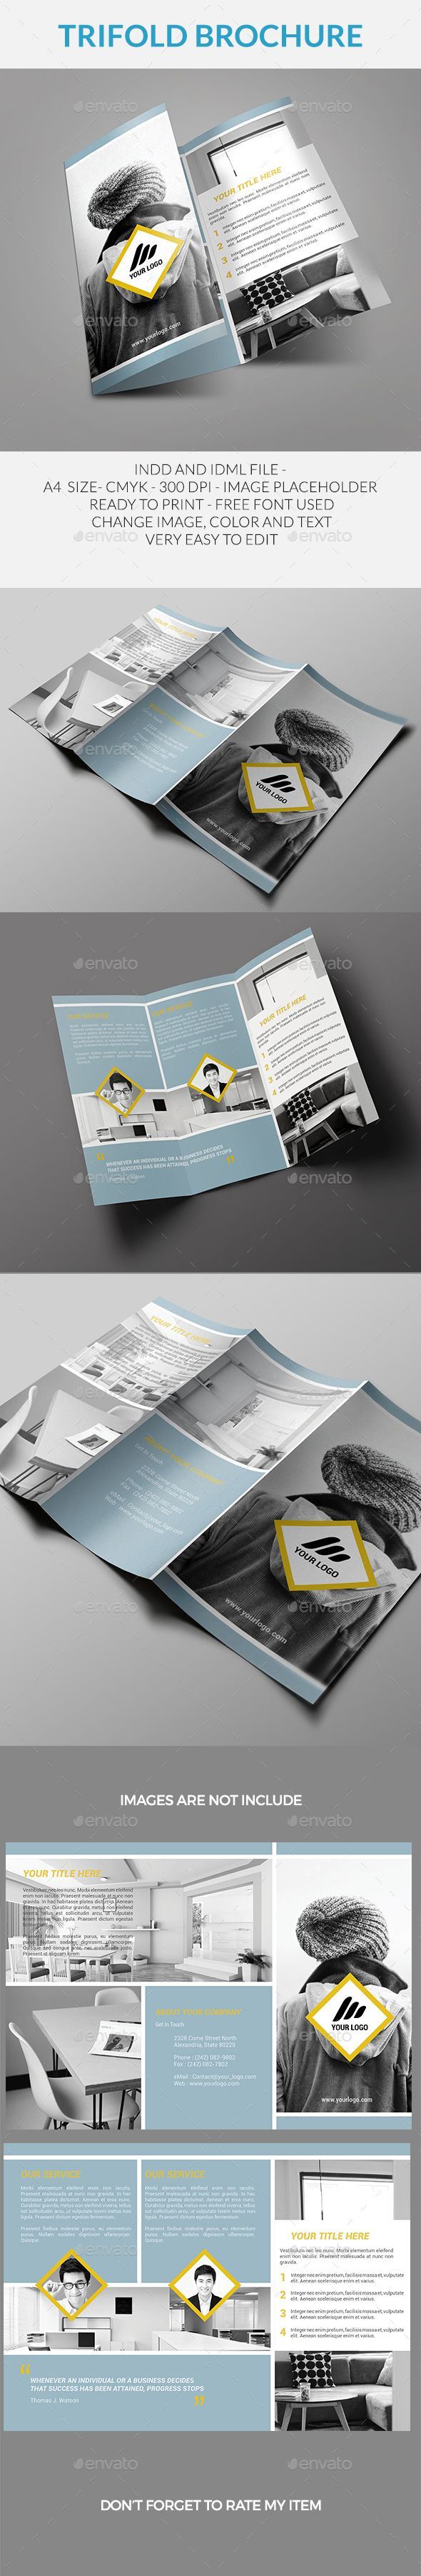 trifold brochure paper